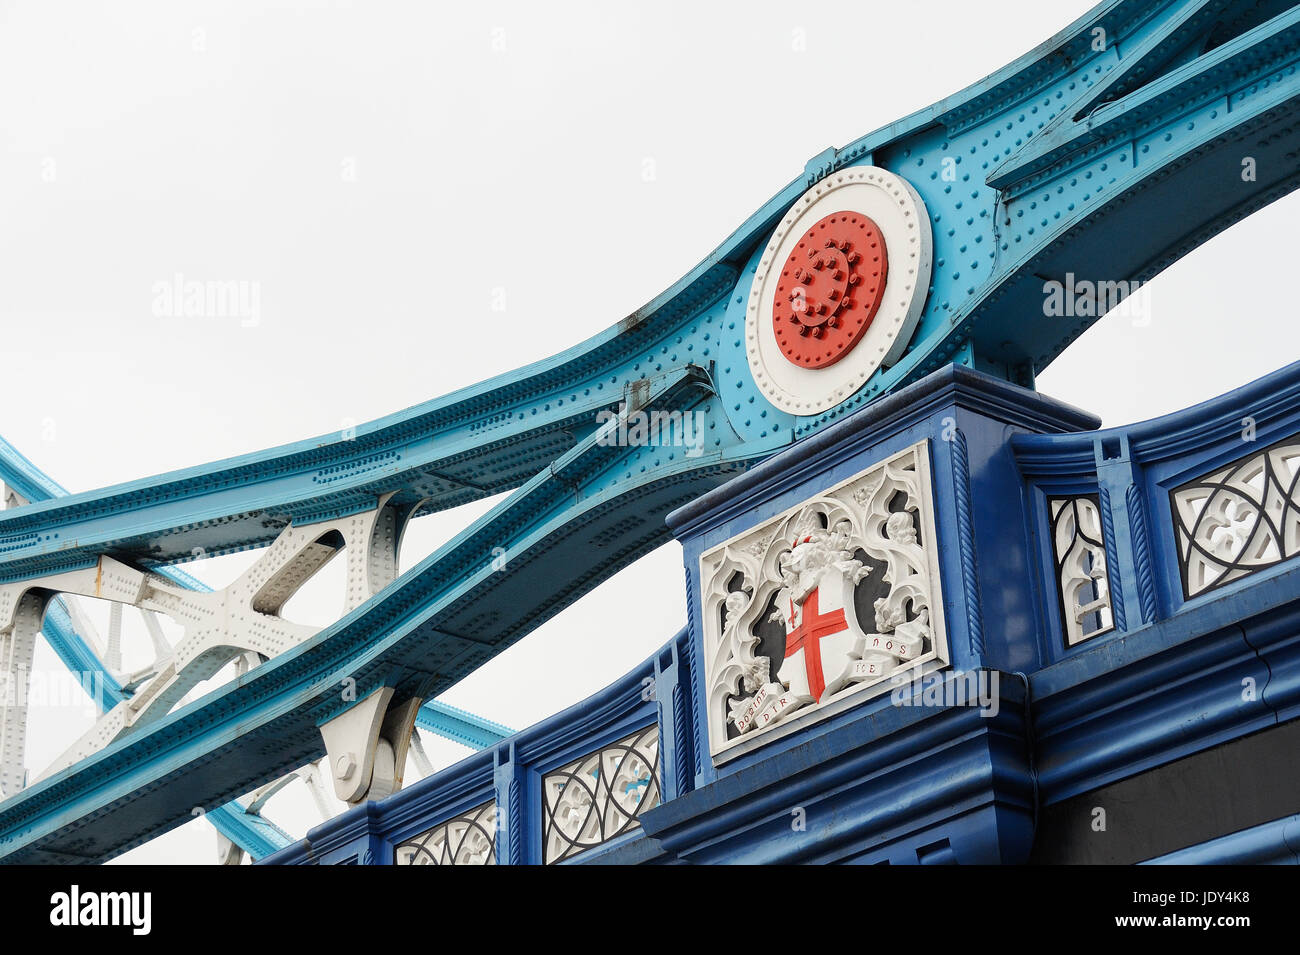 steel parts of the tower bridge in london Stock Photo